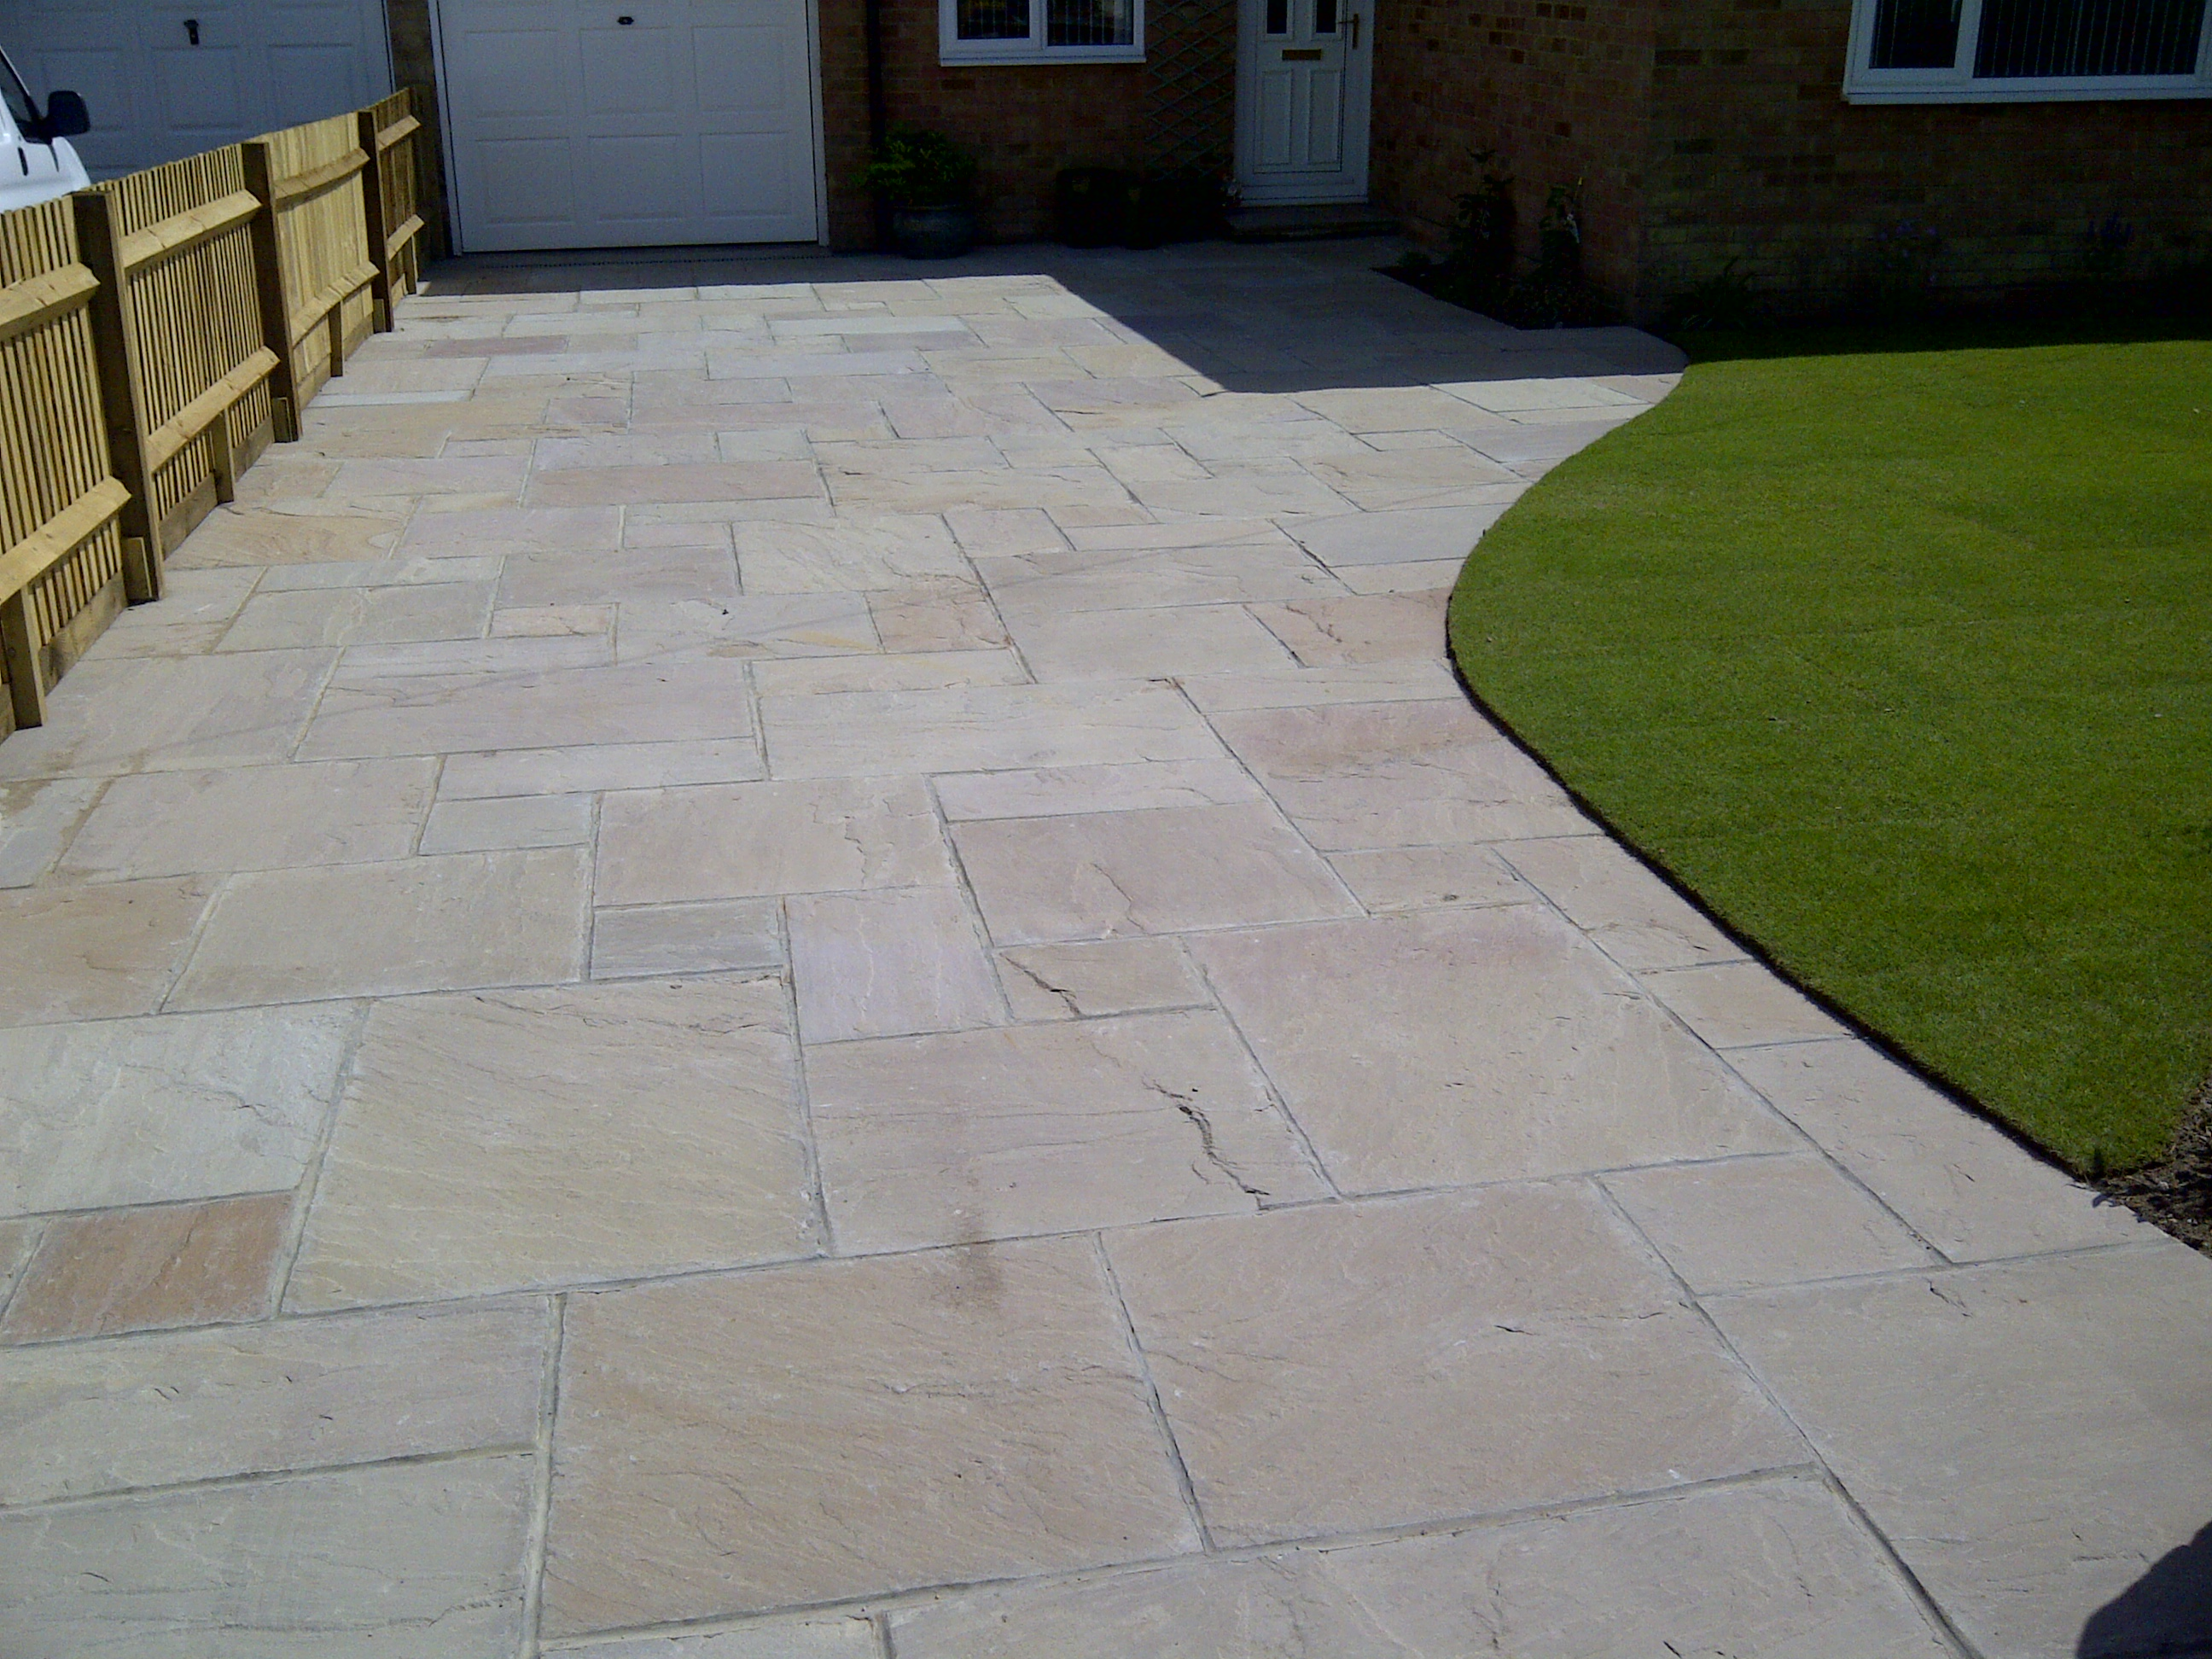 Indian flagstone drive laid over reinforced concrete